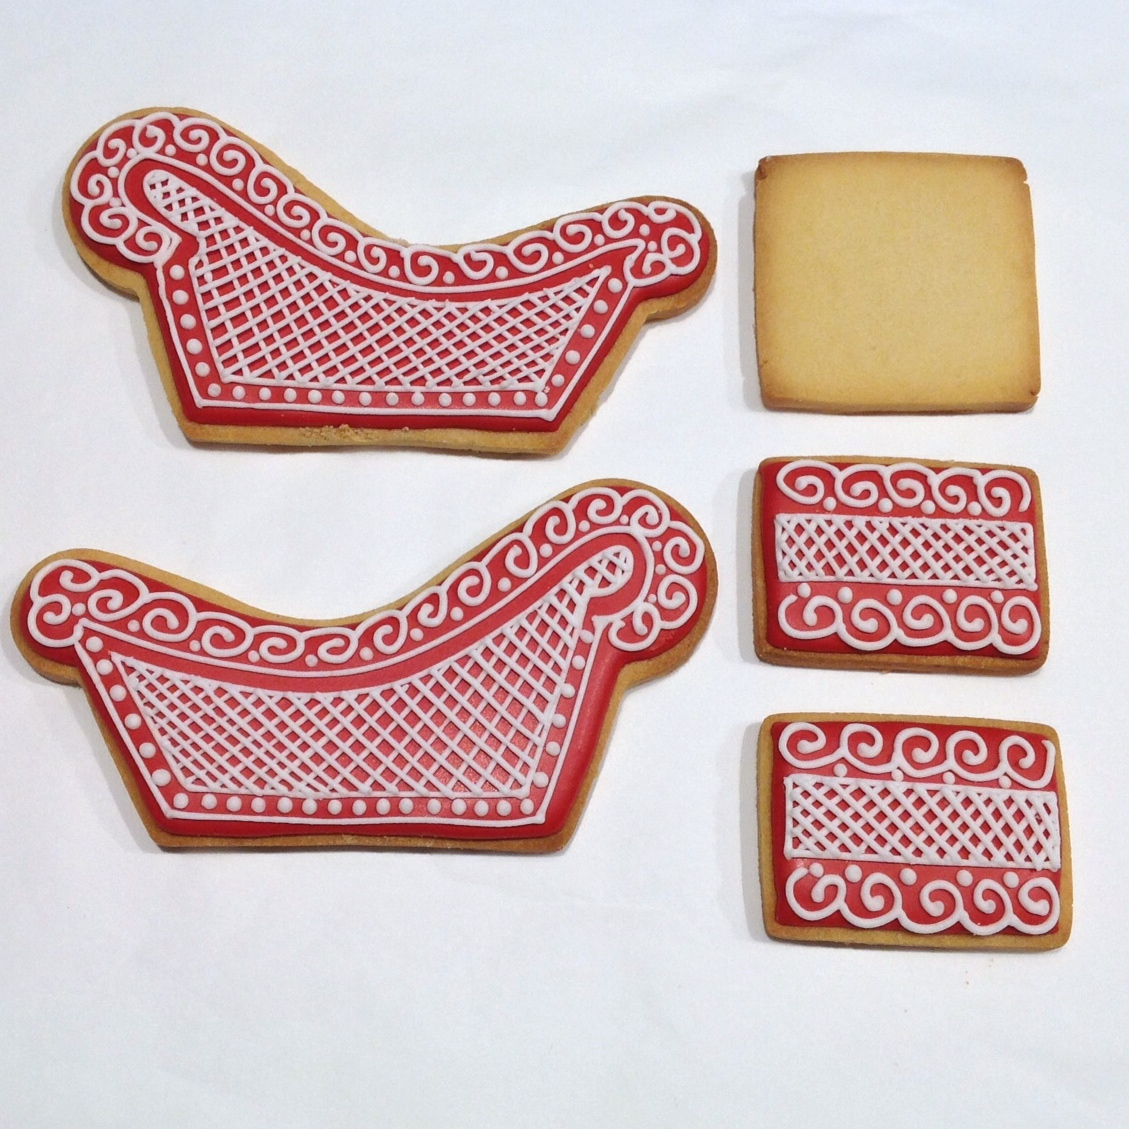 Making Your Santa Sleigh Gingerbread House